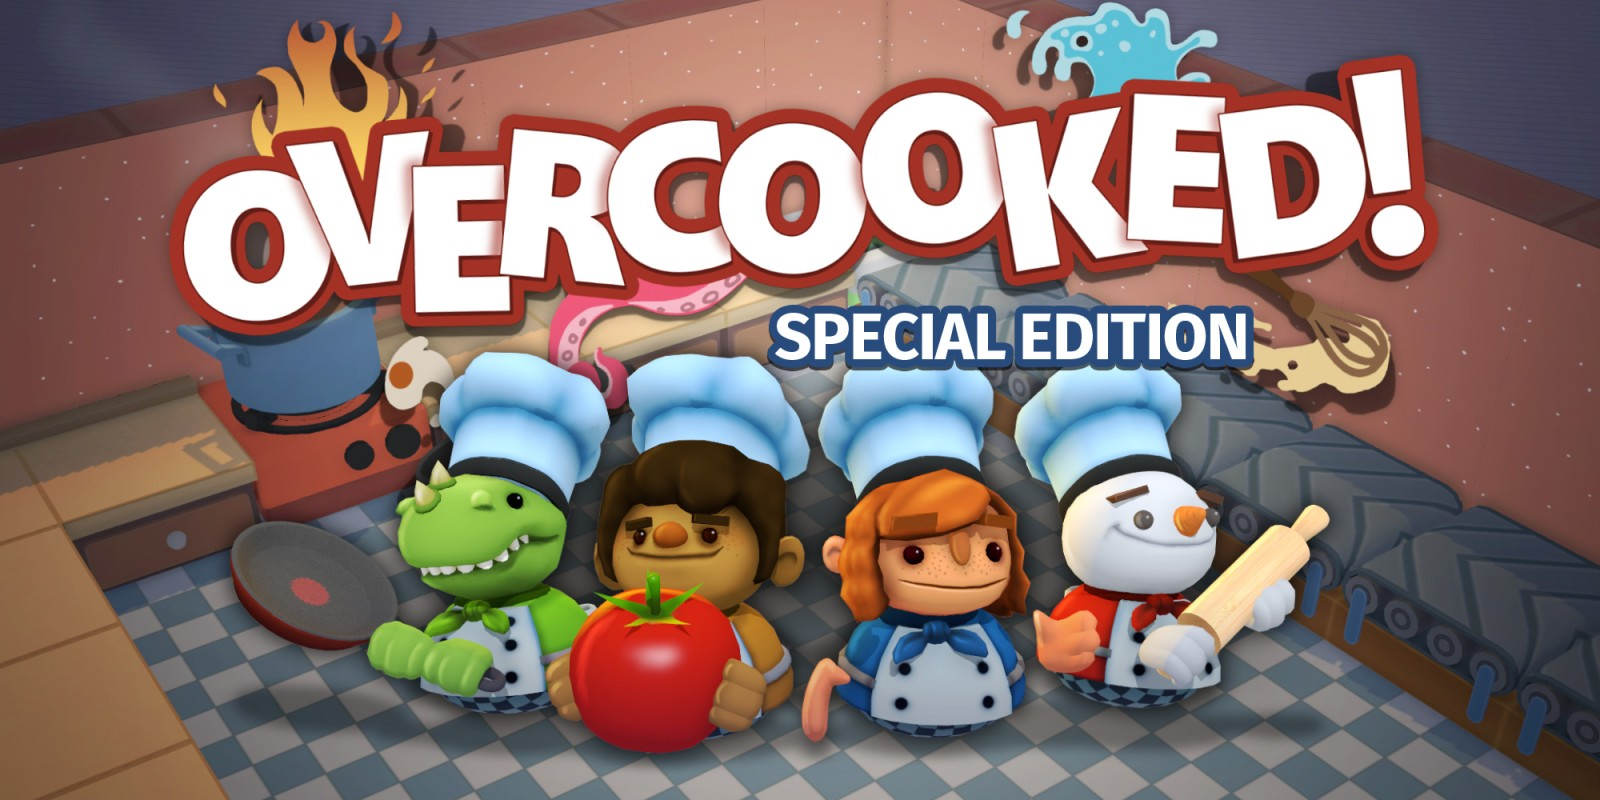 h2x1_nswitchds_overcookedspecialedition_image1600w